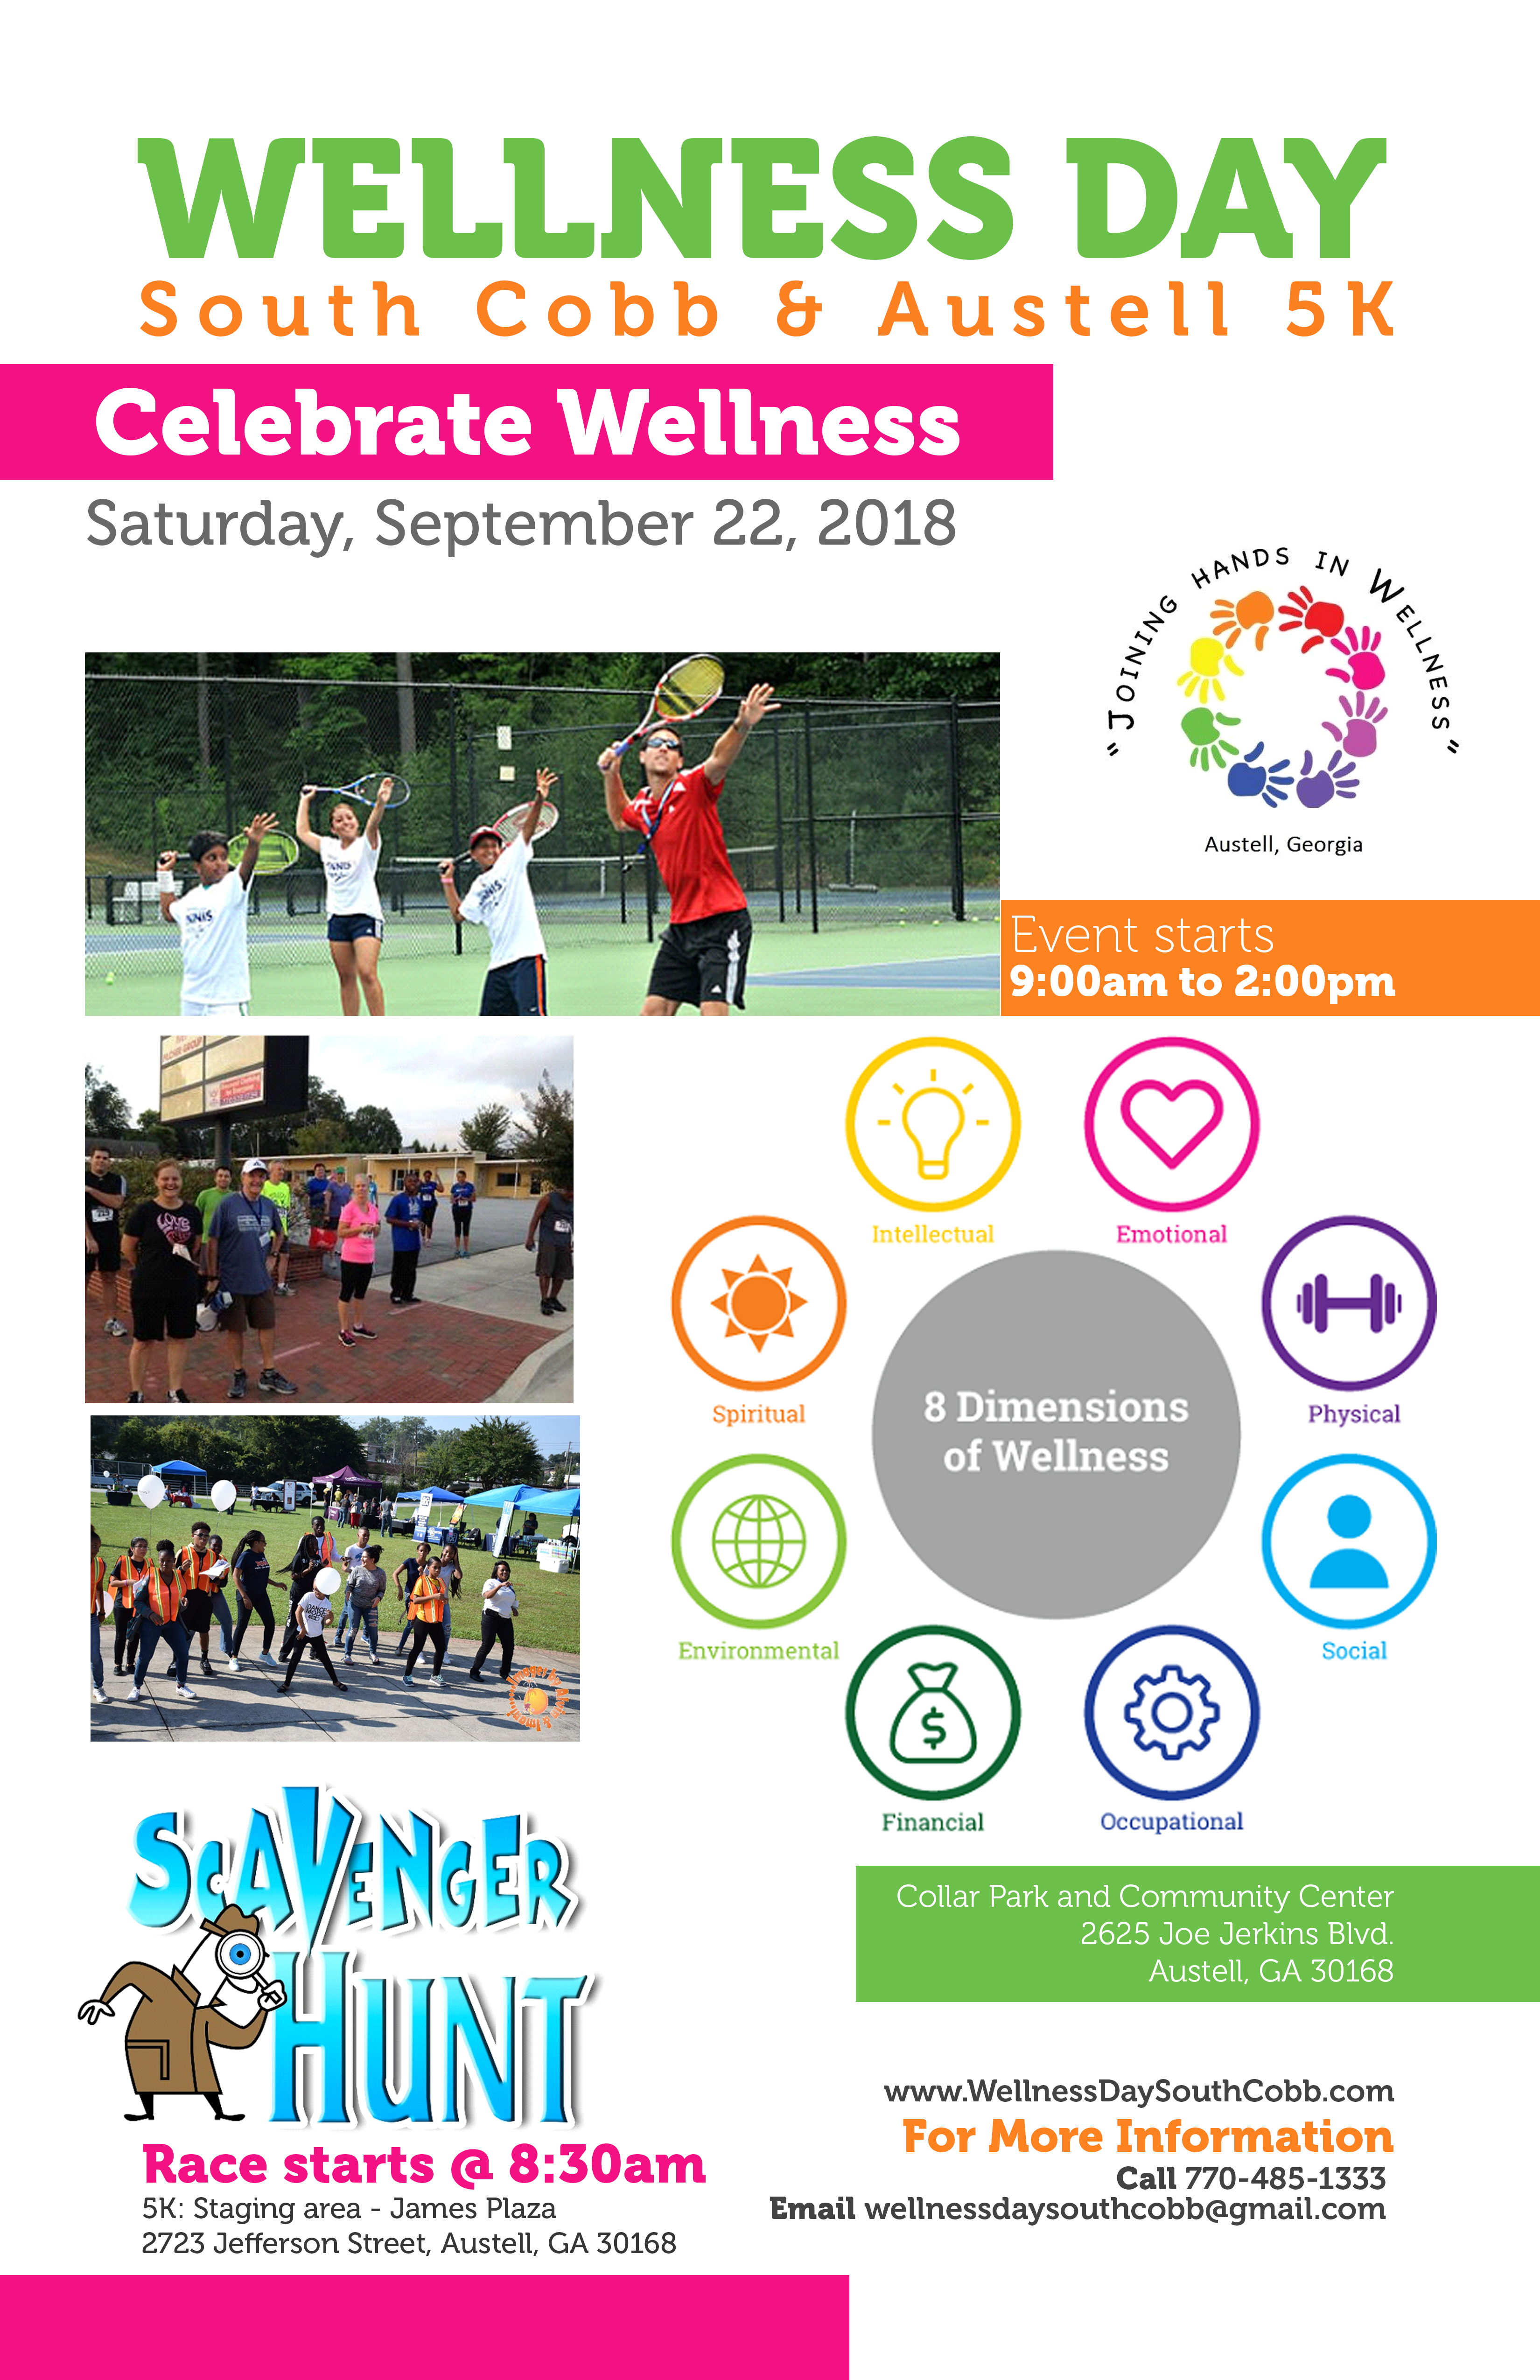 Summer Health and Education Festival - Baytown Events |Wellness Day Event Flyers